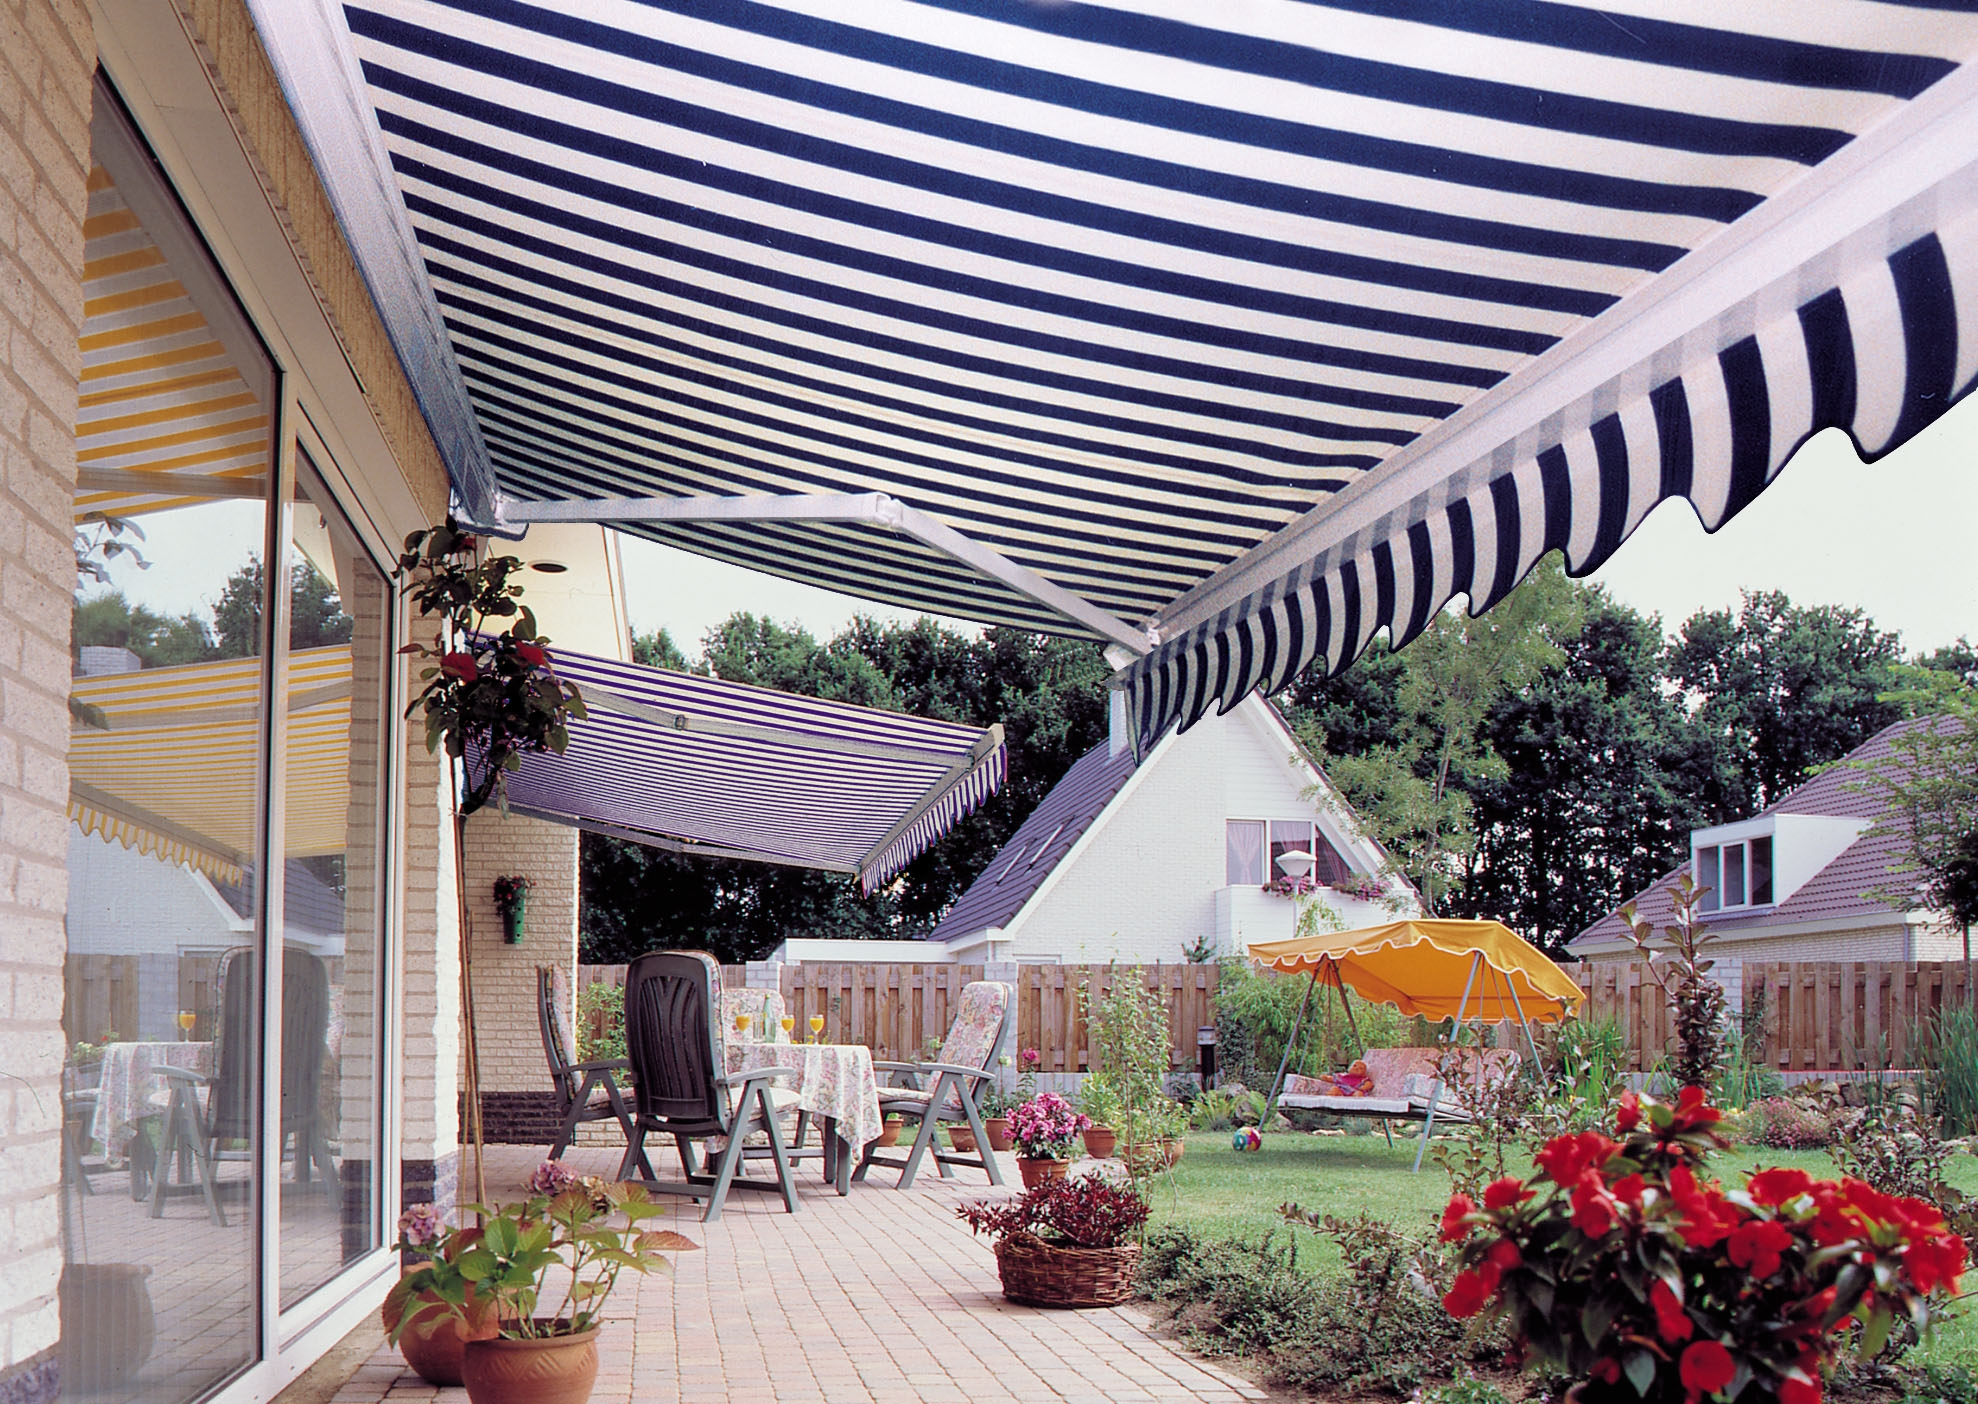 Awnings & Canopies - Types and Designs